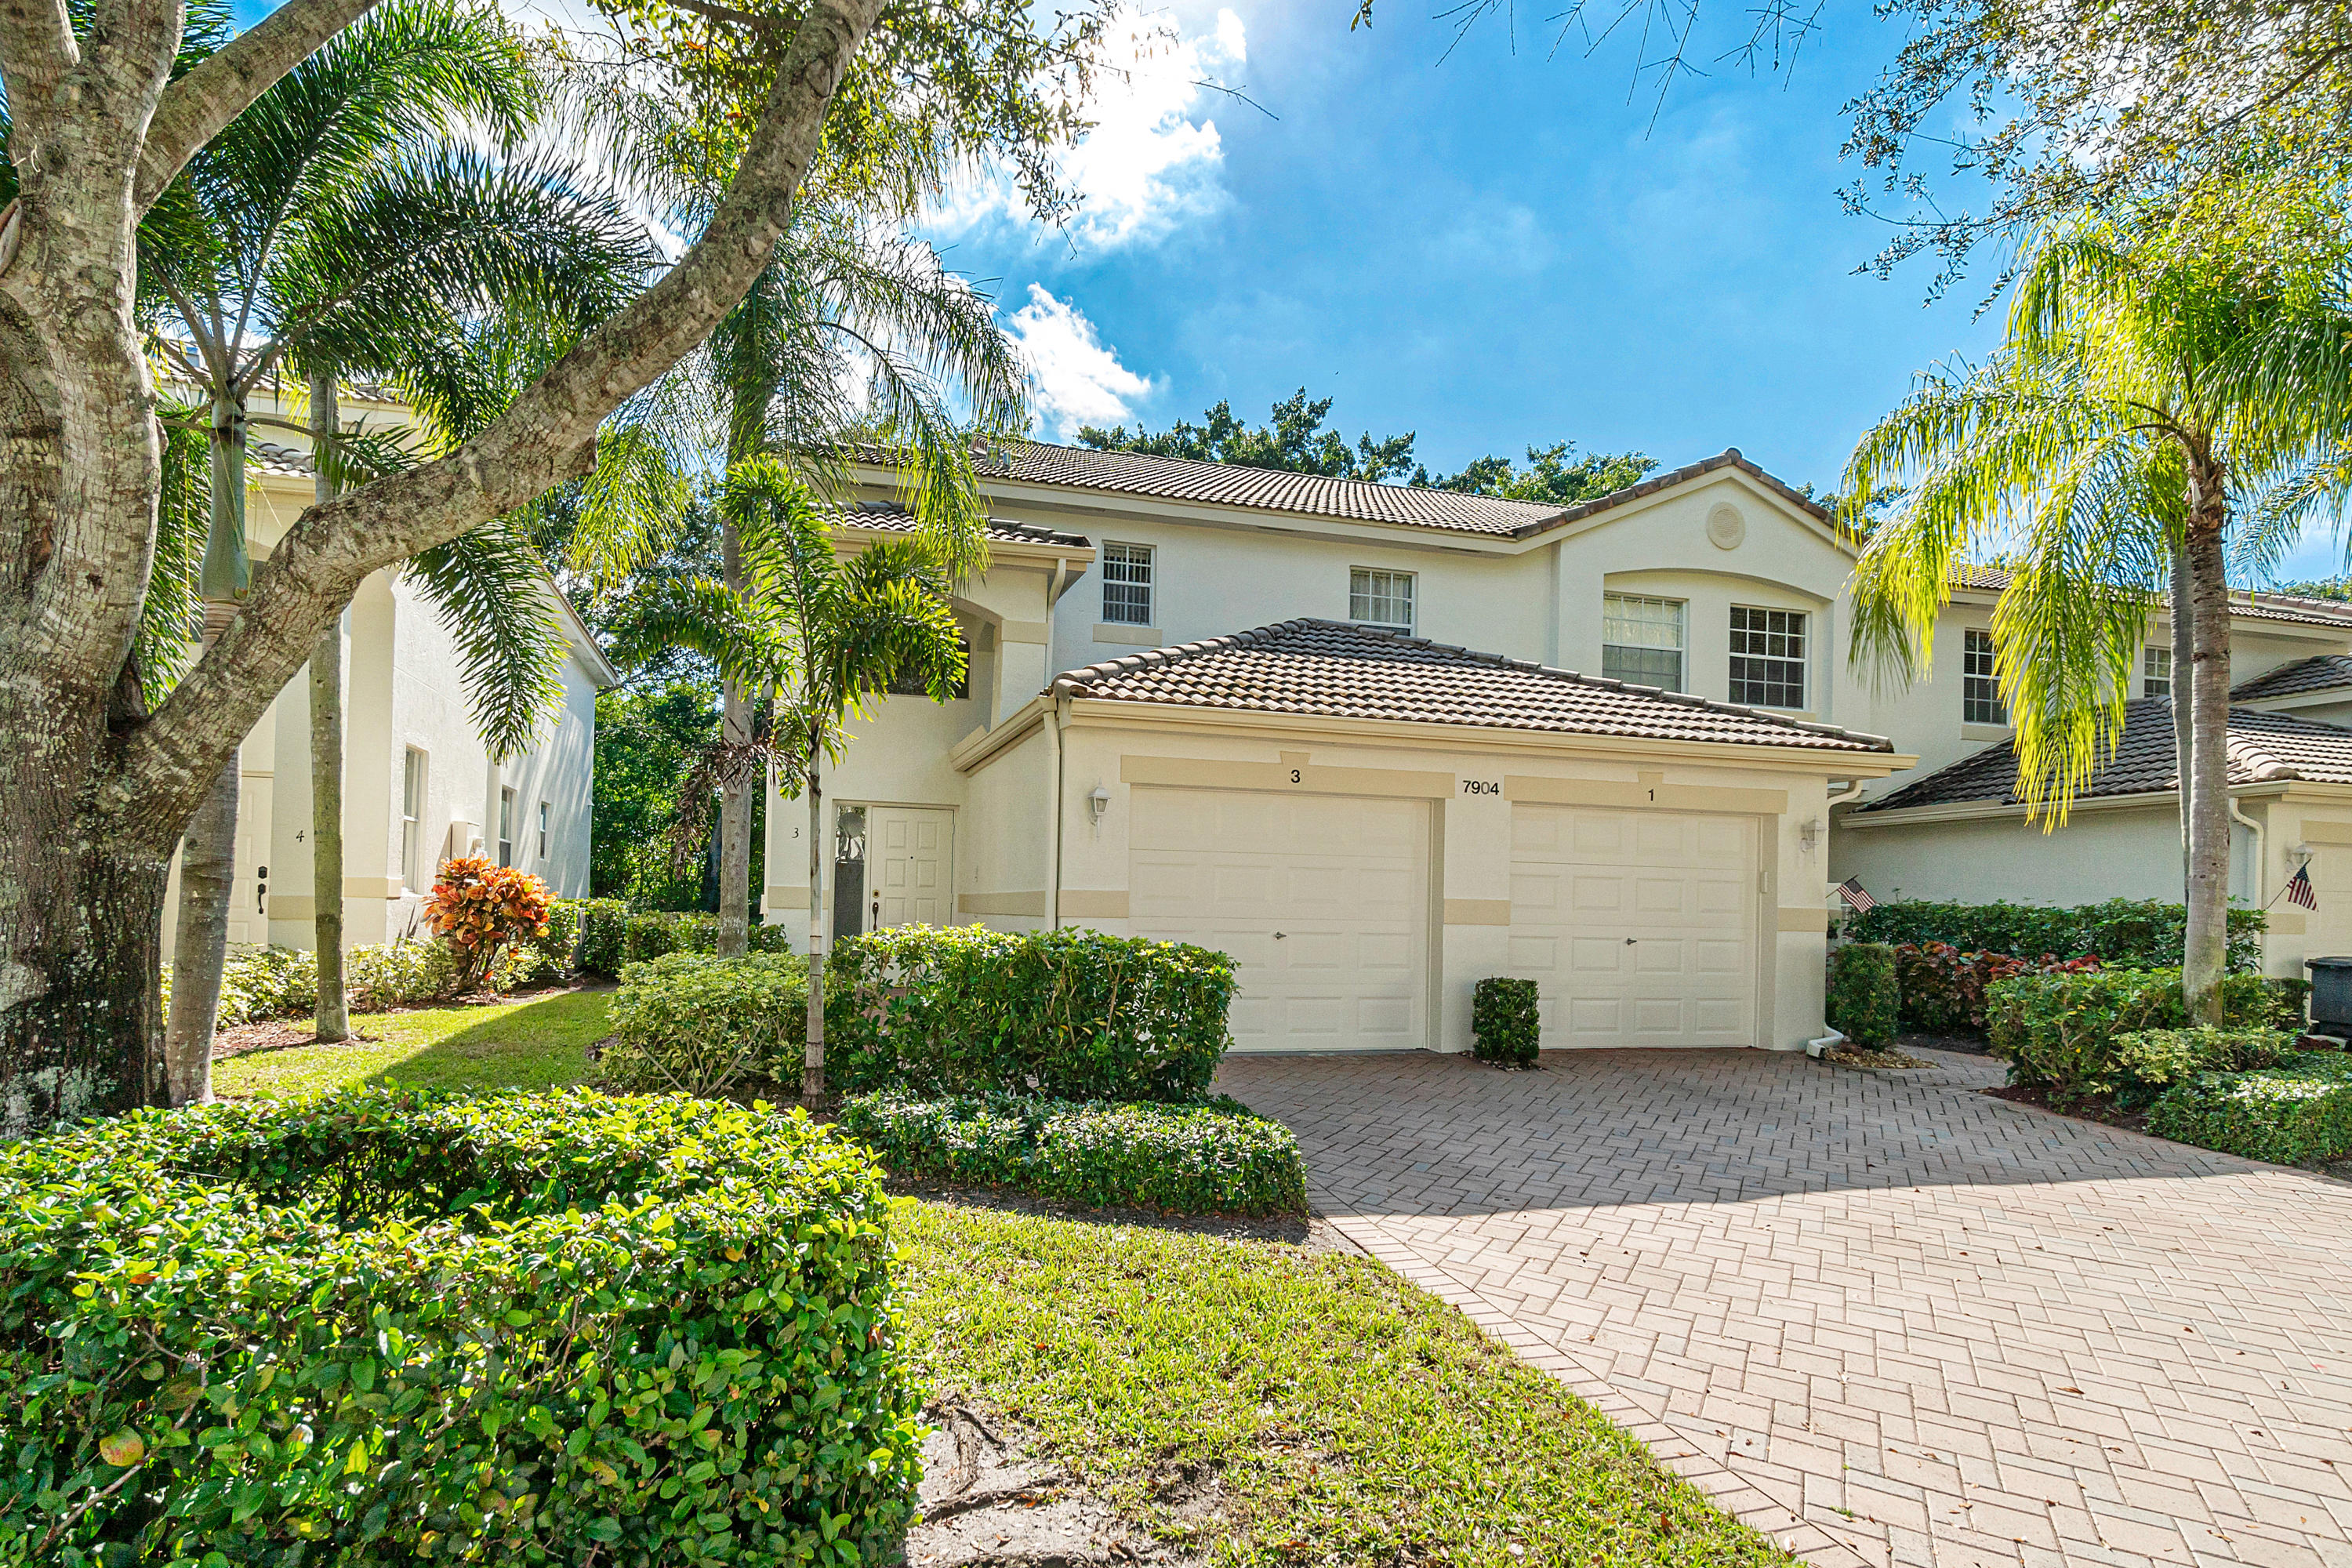 Home for sale in Grove Village Boynton Beach Florida